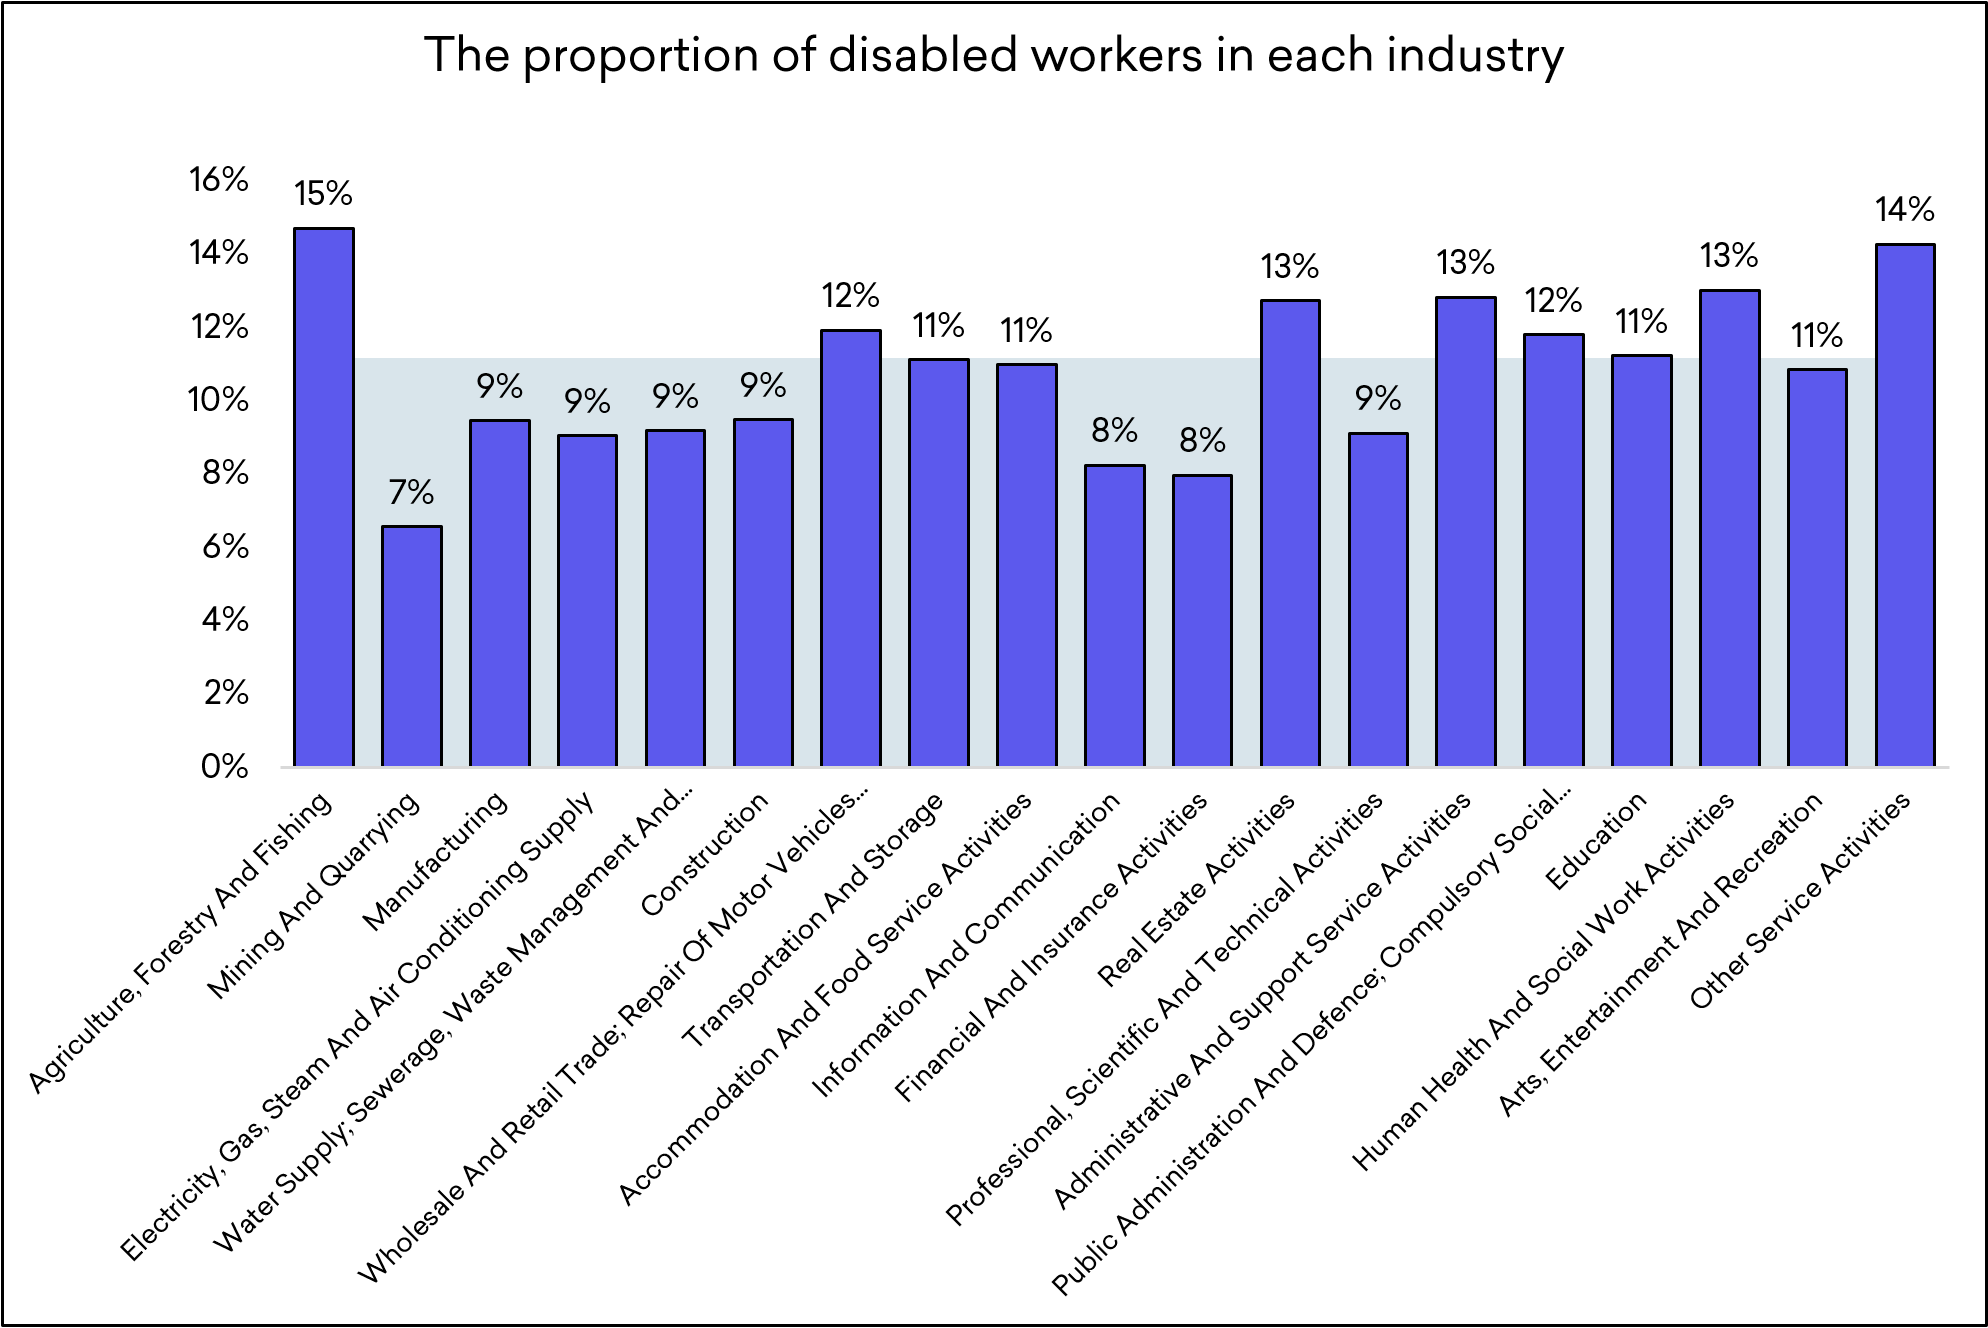 The proportion of disabled workers in each industry